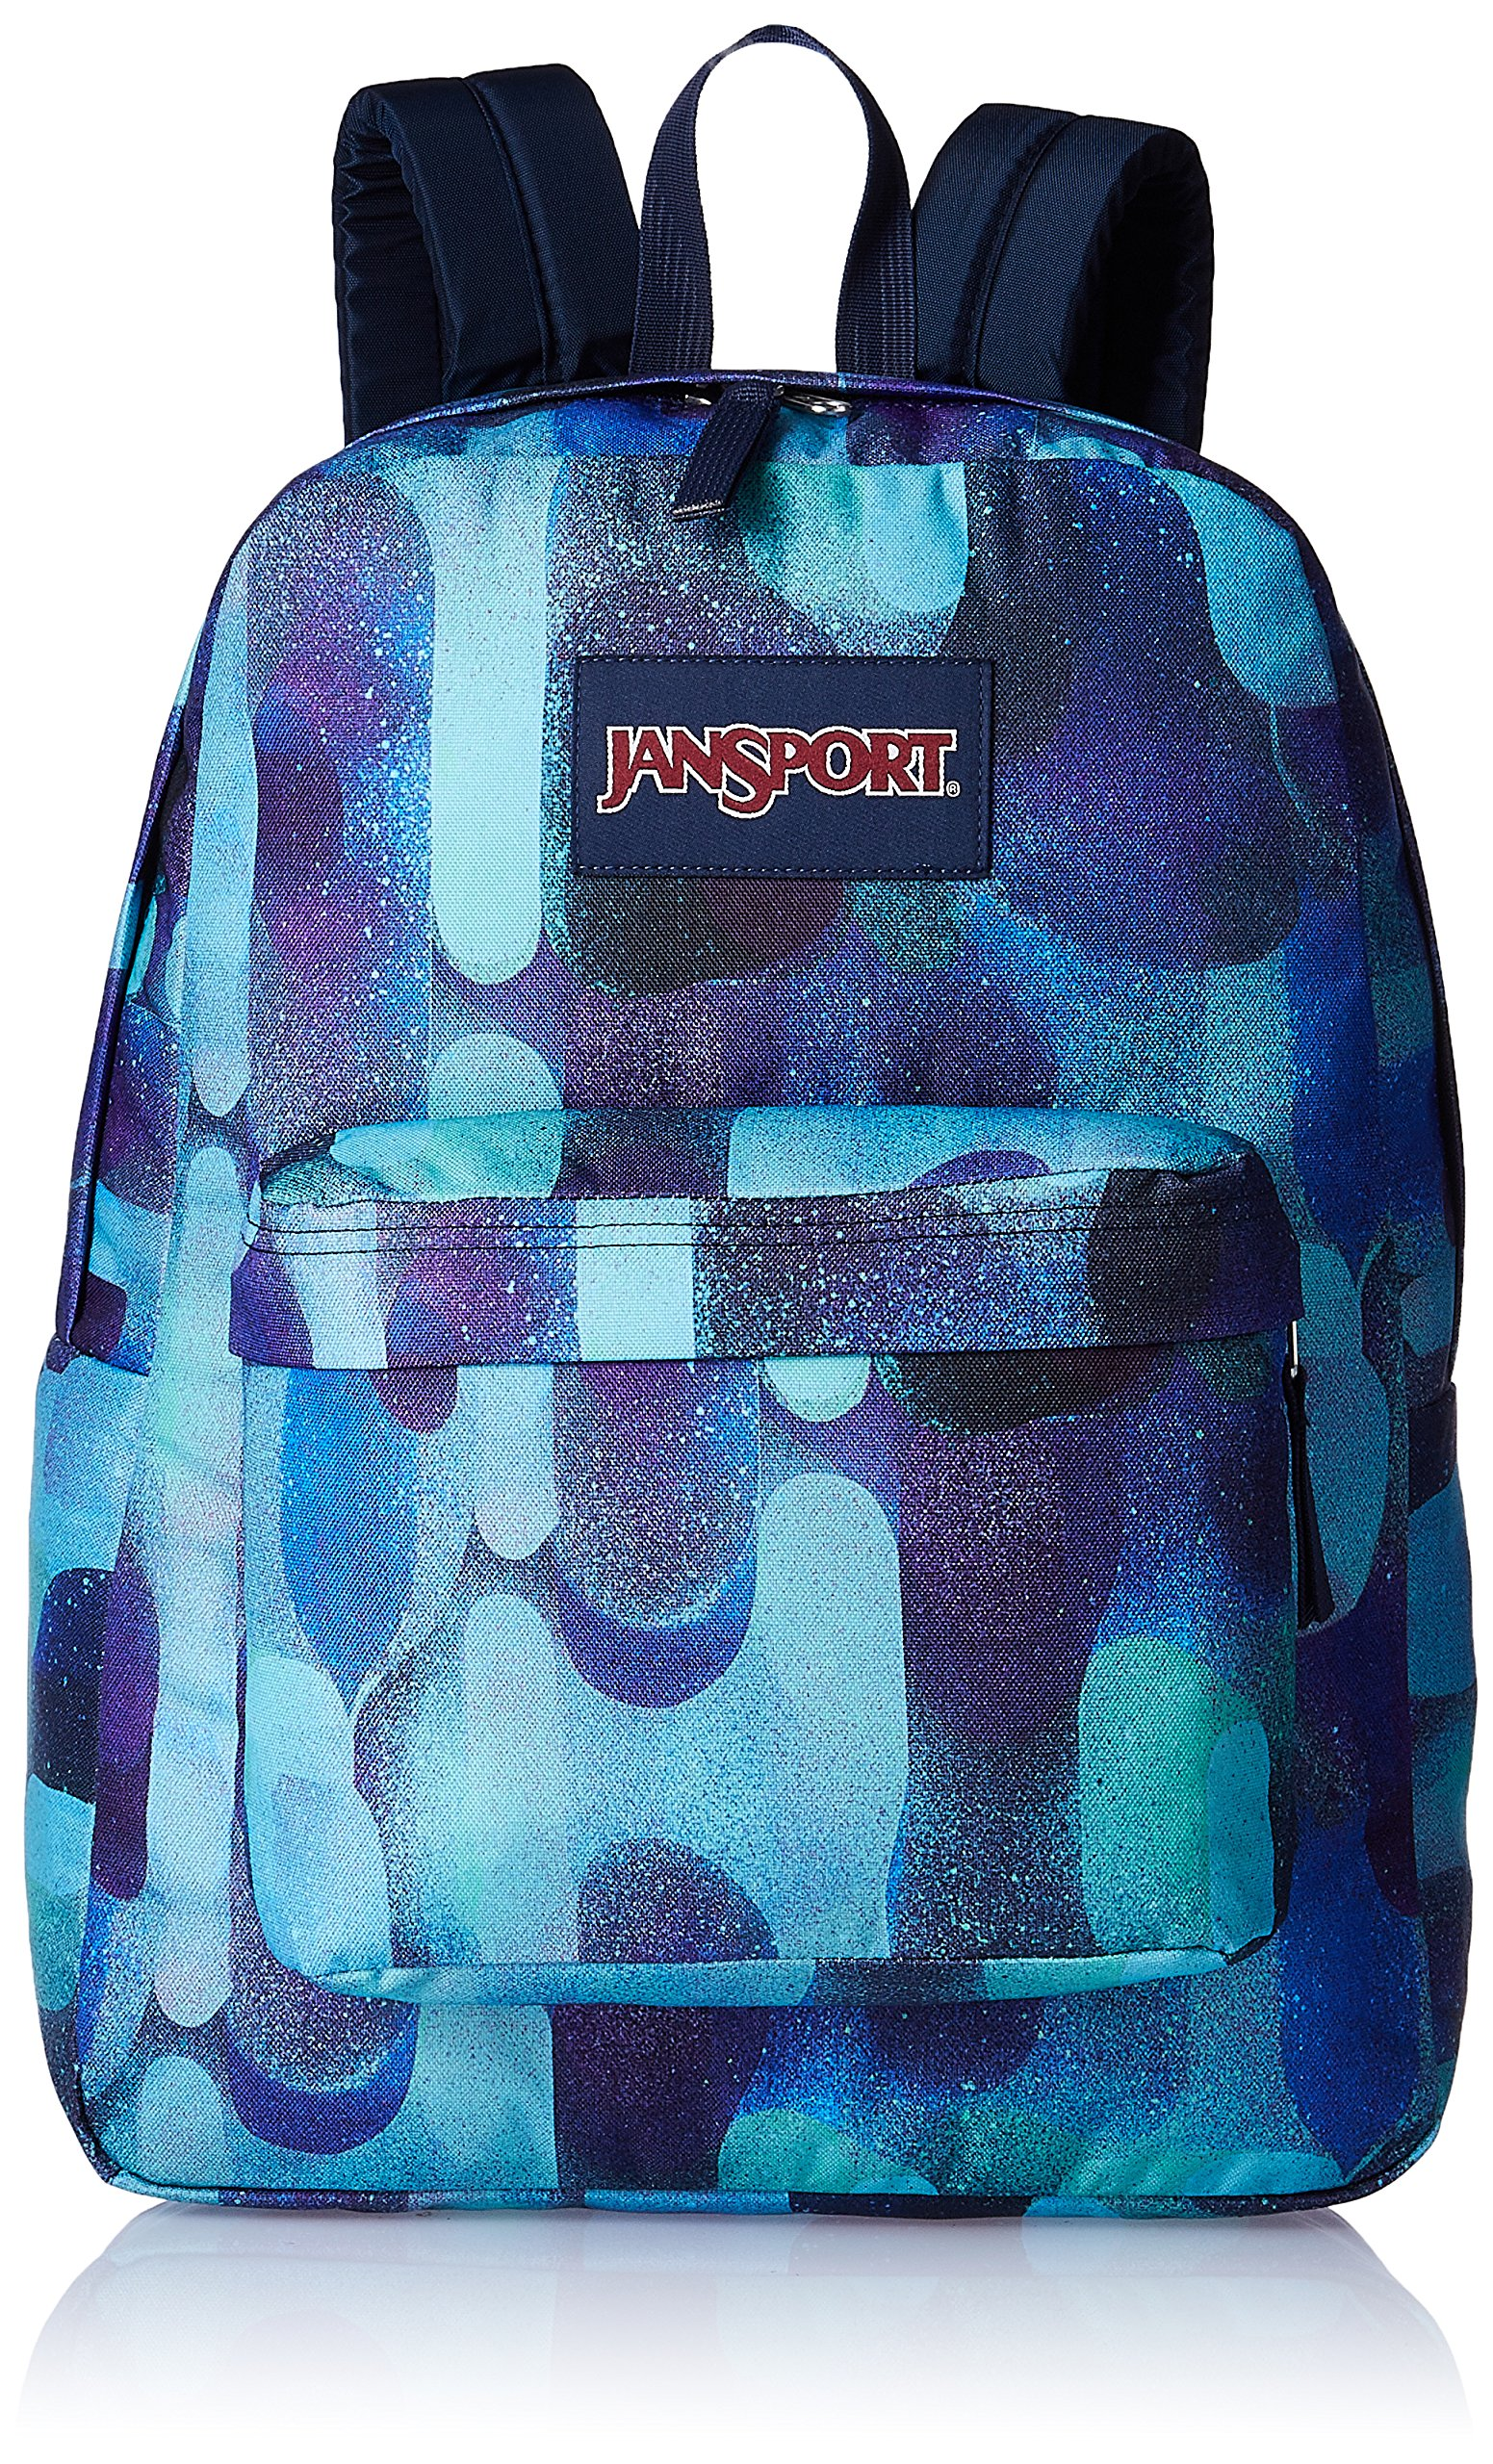 JanSport Superbreak Backpack- Discontinued Colors (Multi Lava Lamp)